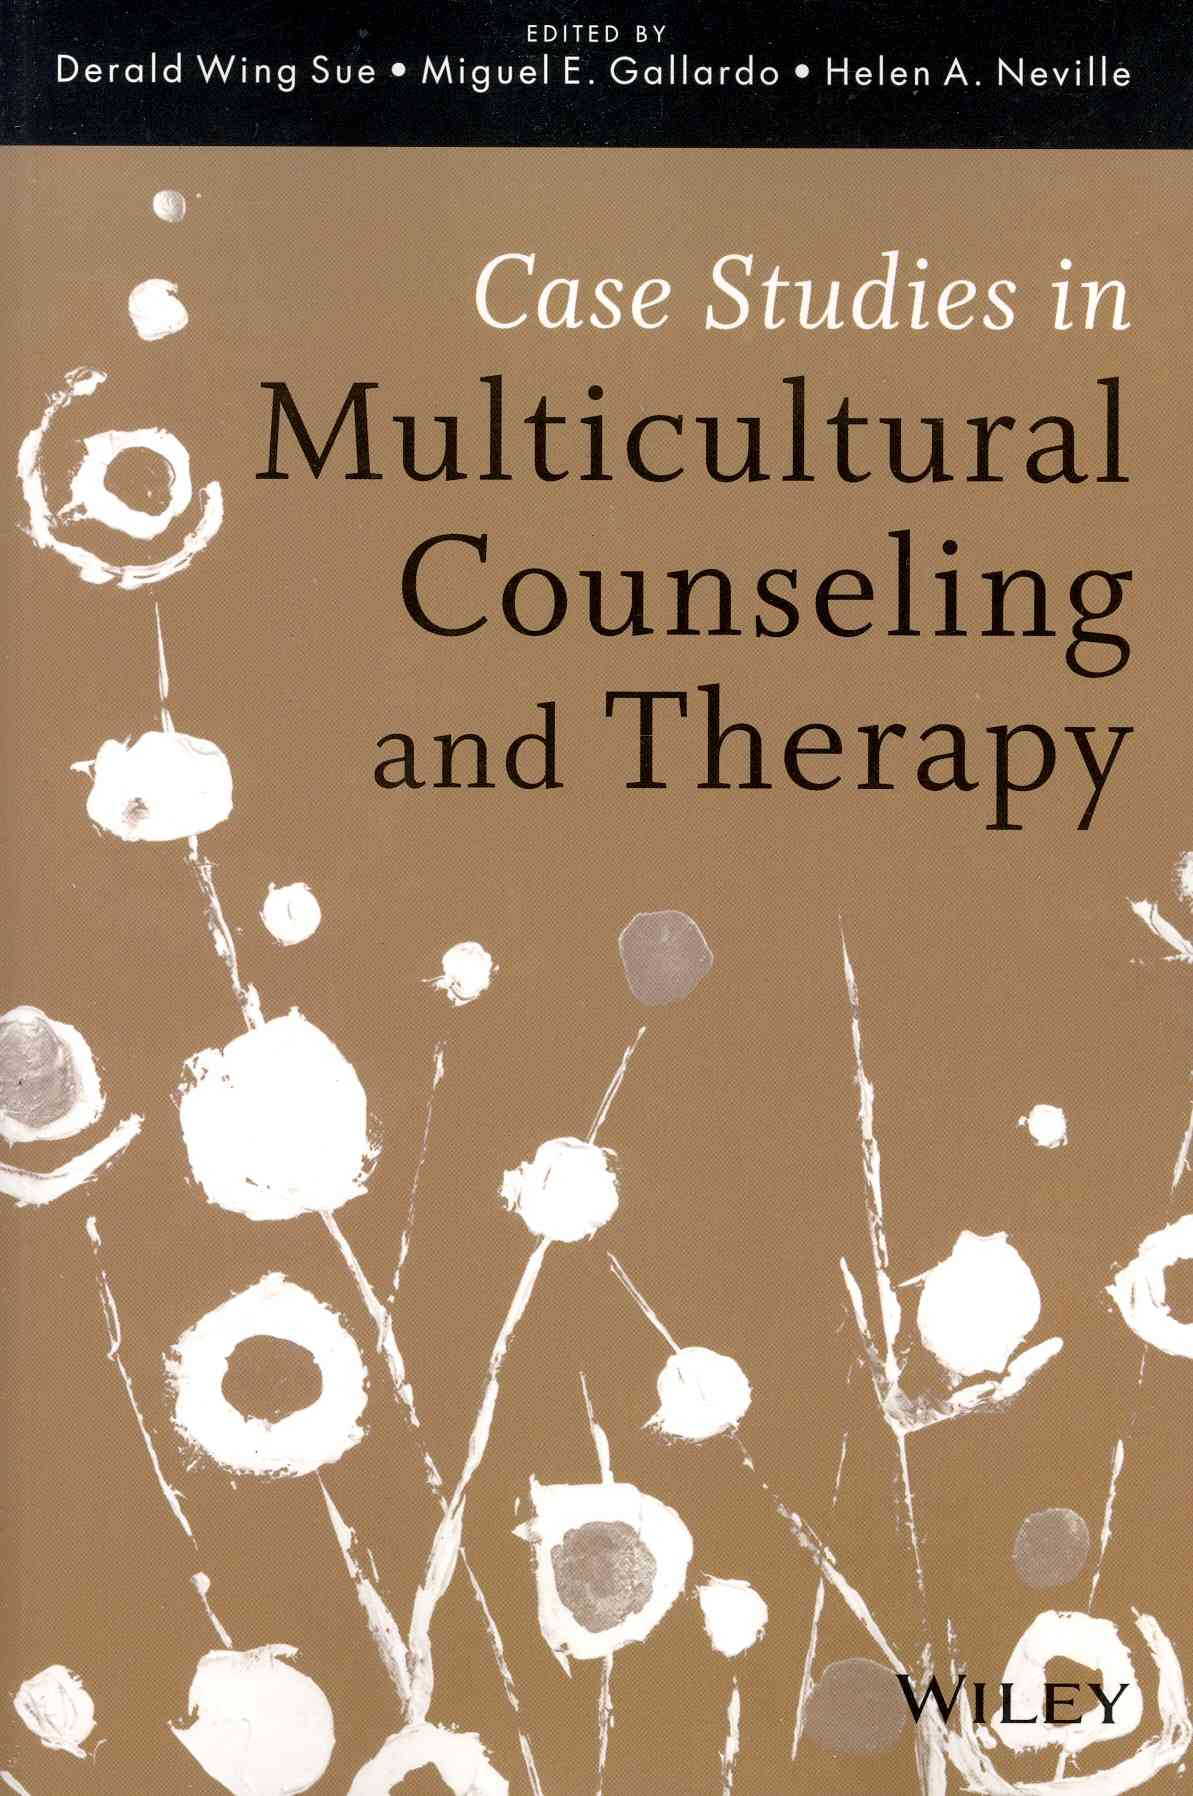 Case Studies in Multicultural Counseling and Therapy By Sue, Derald Wing/ Gallardo, Miguel E./ Neville, Helen A.